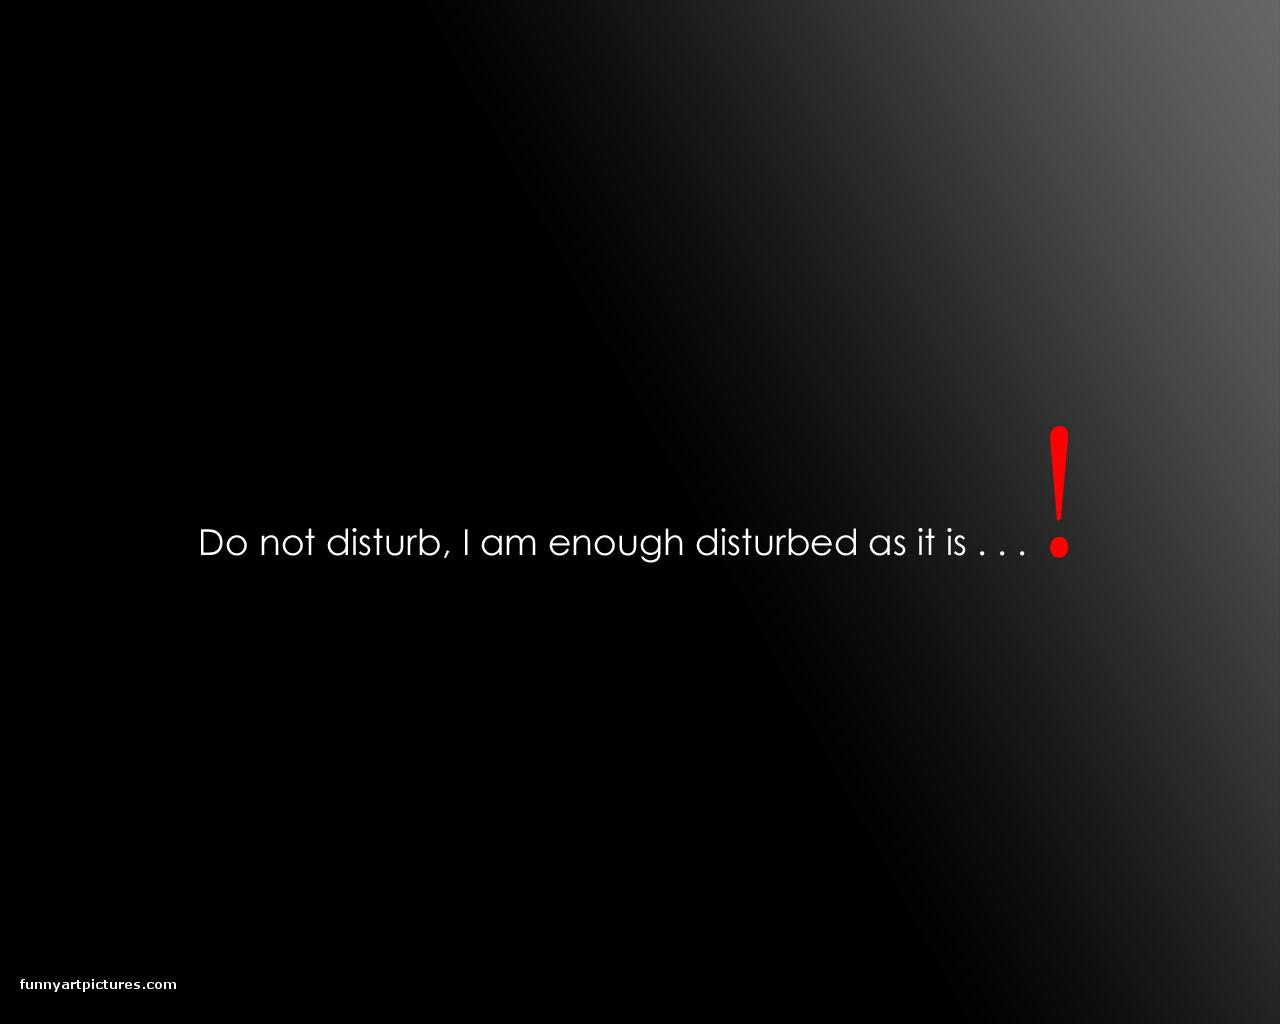 wallpapers Desktop joke Unusual Desktop Funny humorous Wallpaper 1280x1024